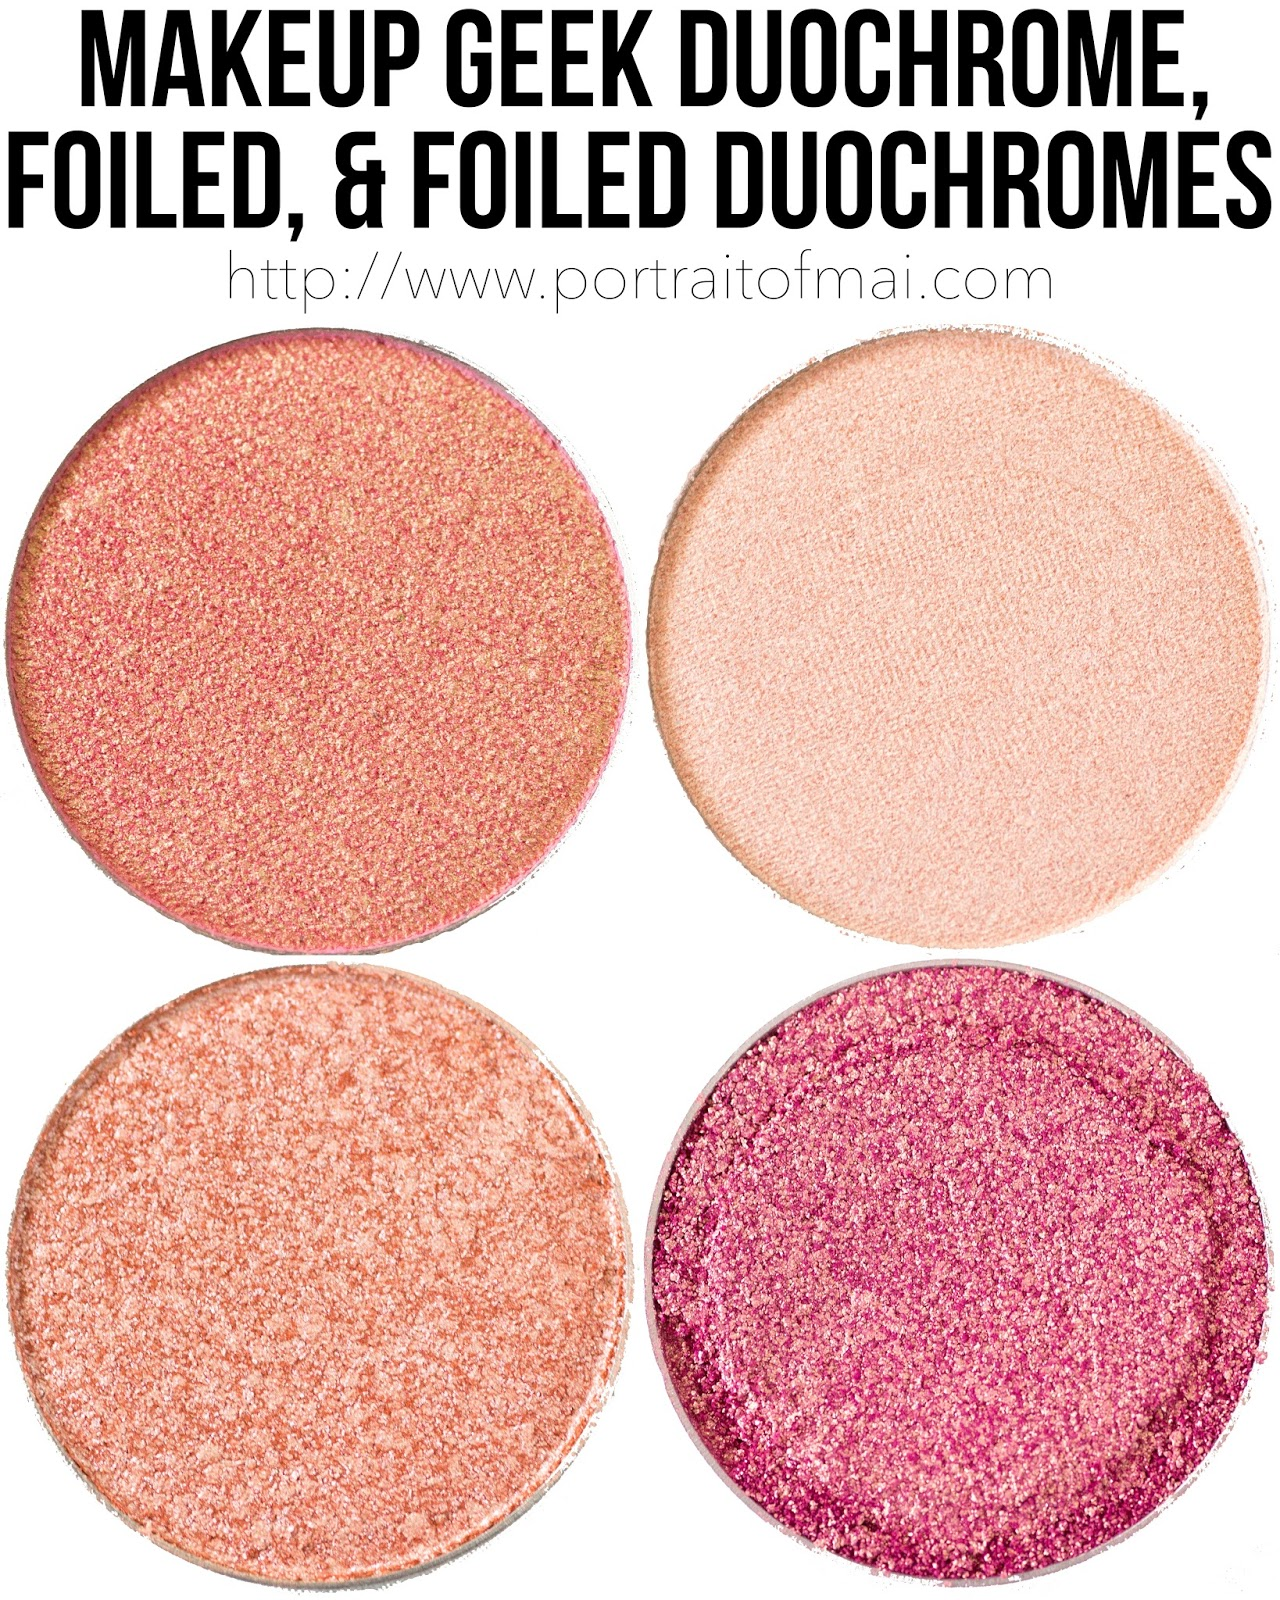 Makeup Geek Duochrome, Foiled, and Foiled Duochrome Eyeshadows